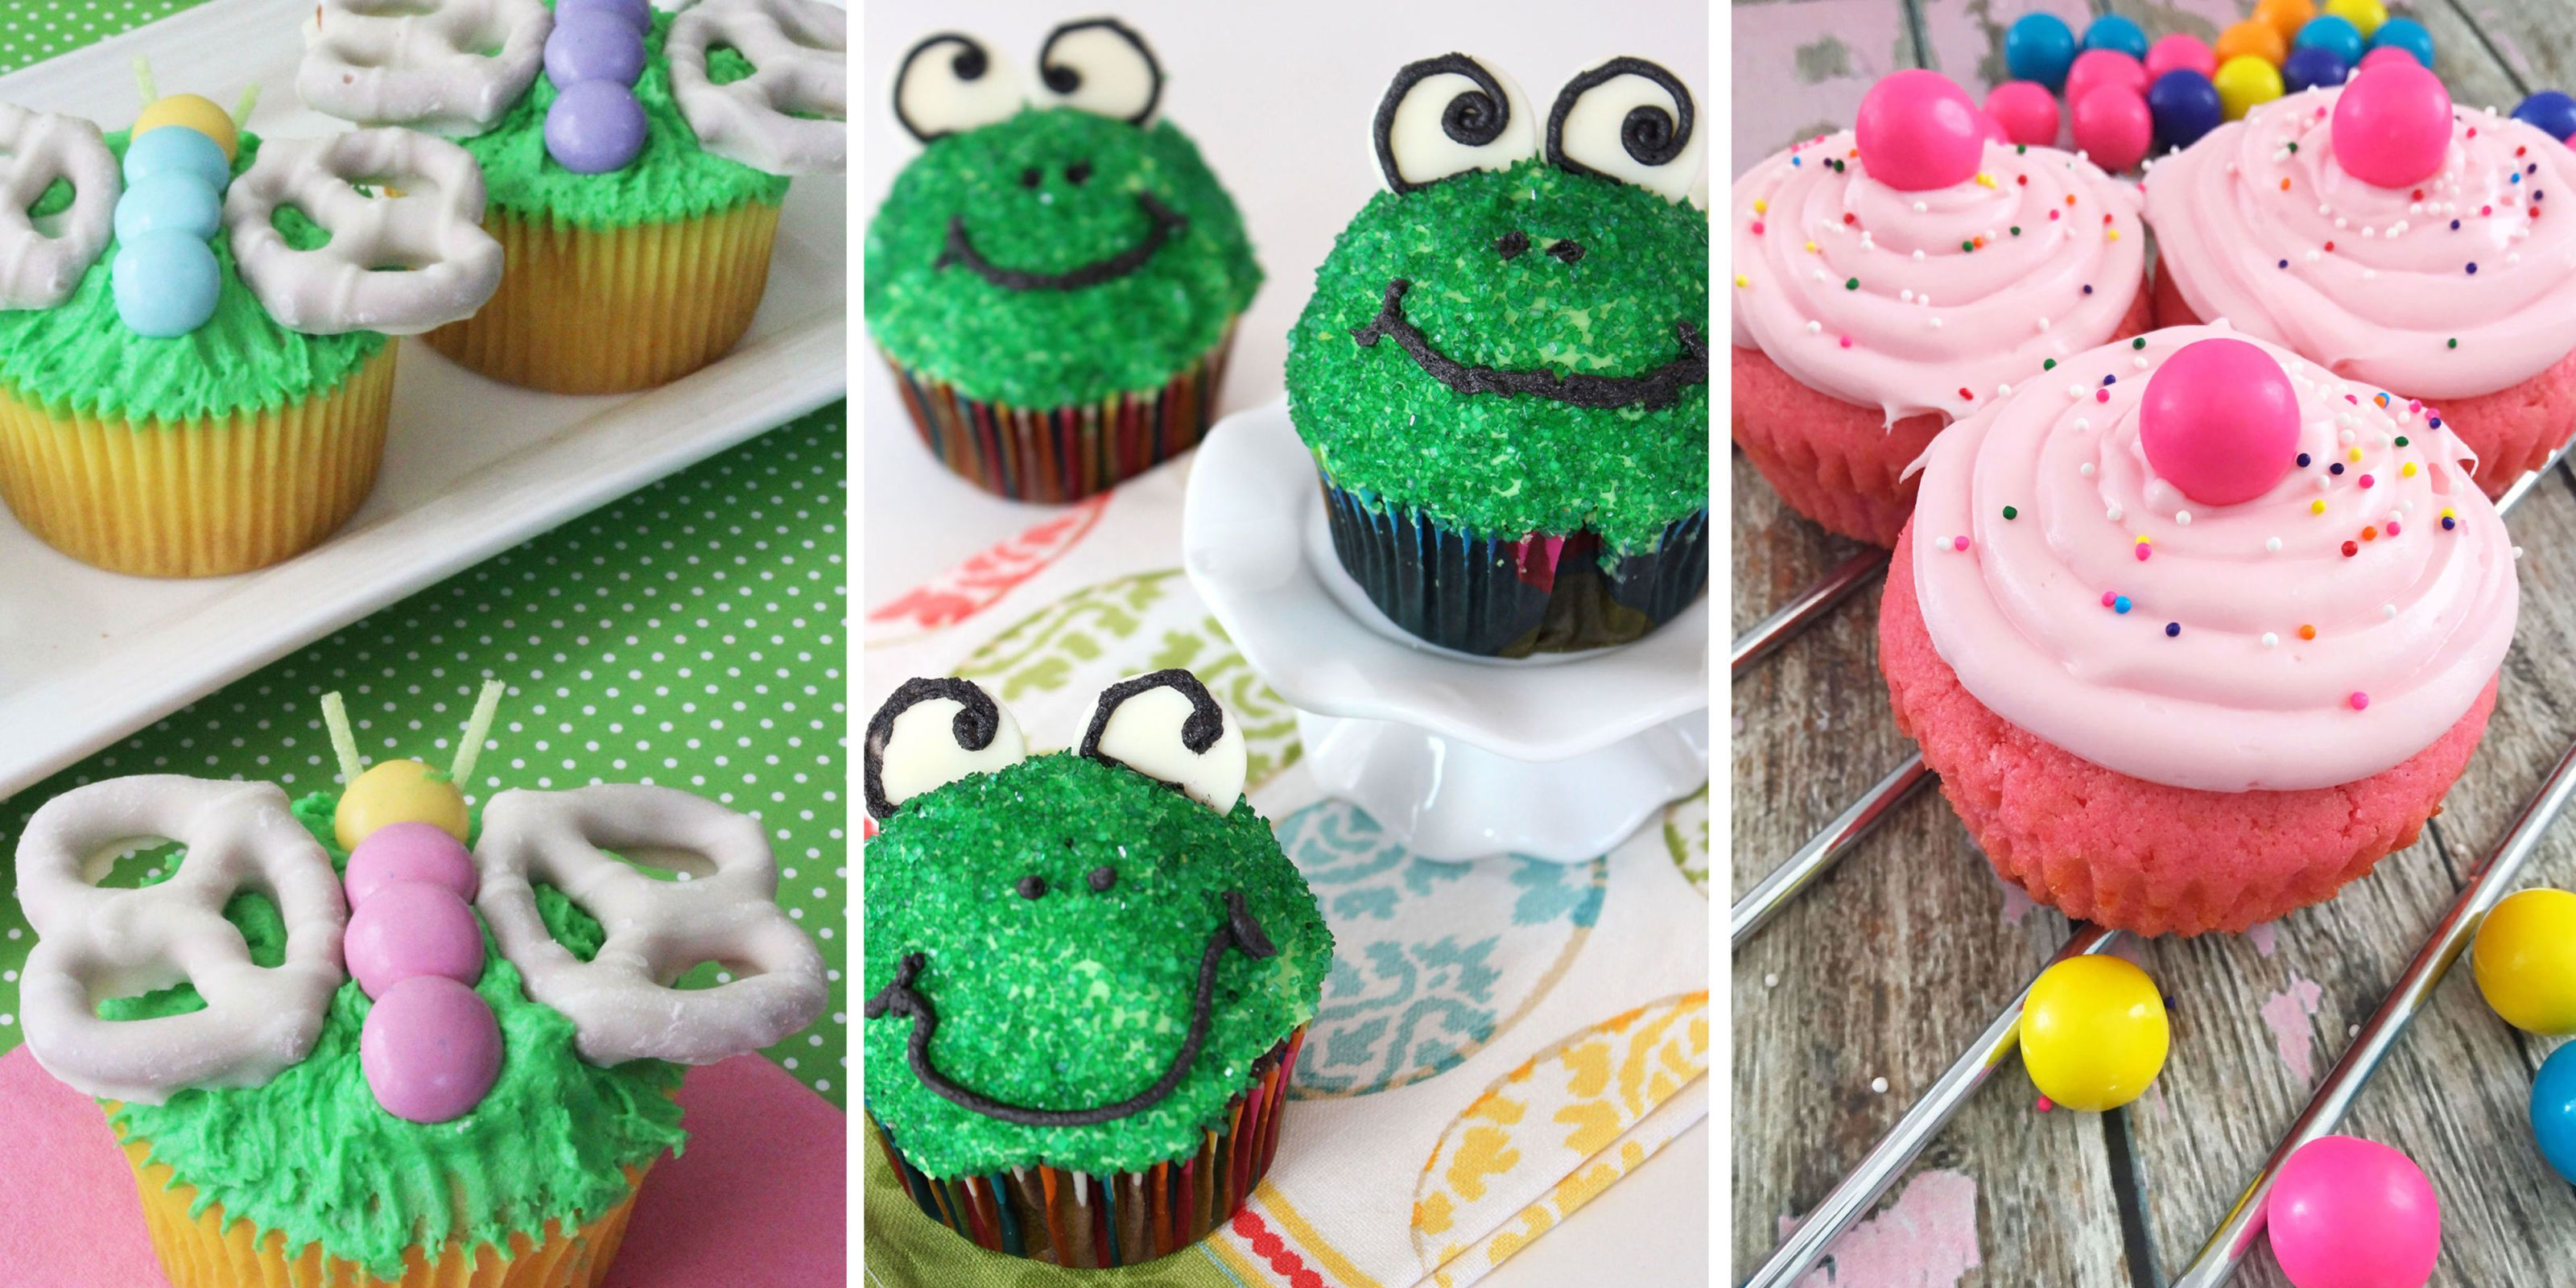 20 Easy Spring Cupcake Ideas Decorating Cute Spring Cupcakes